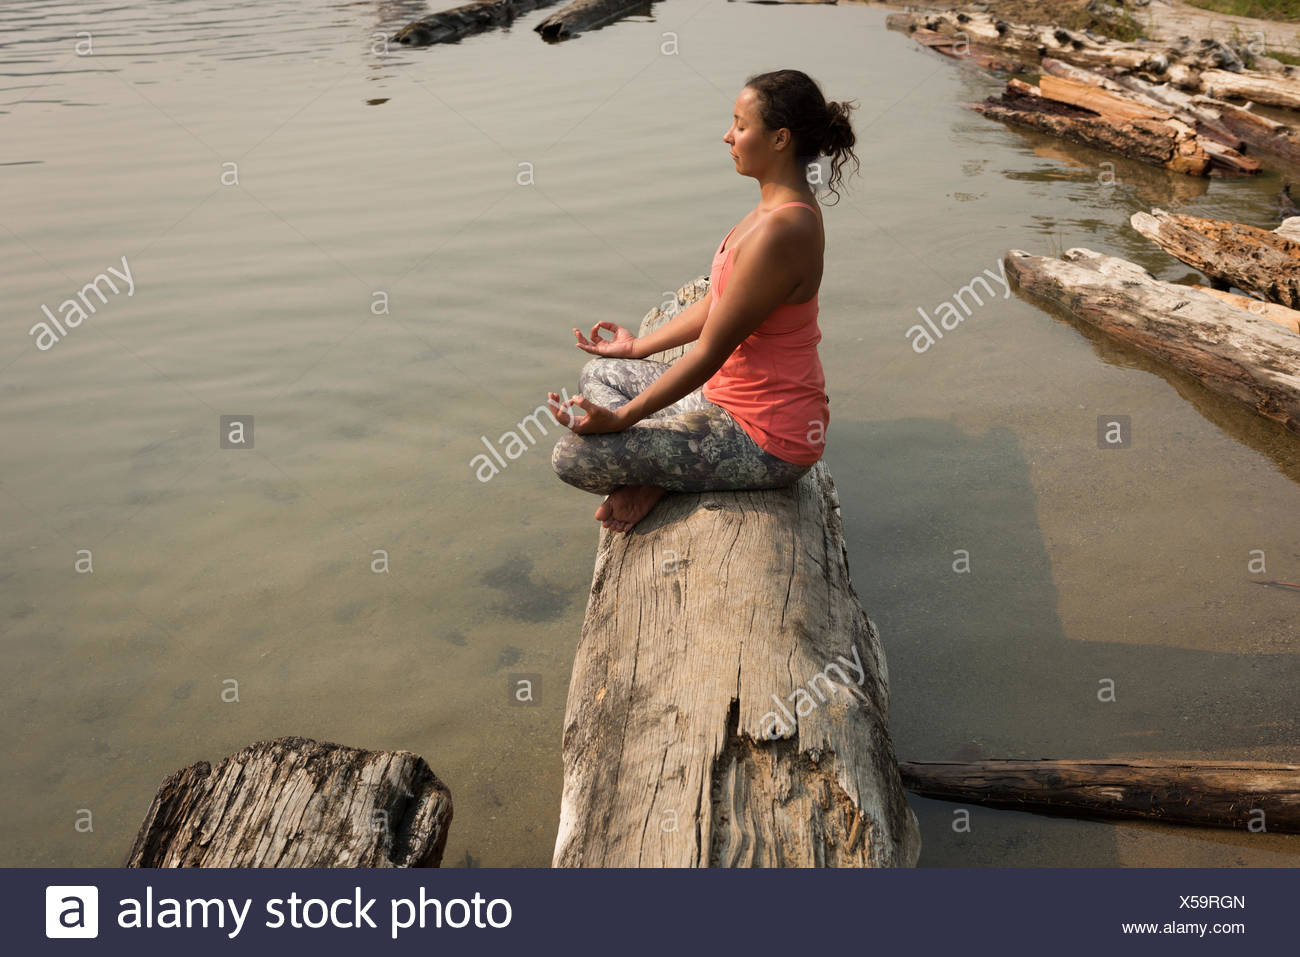 Fit woman sitting in meditating posture on a fallen tree trunk - Stock Image